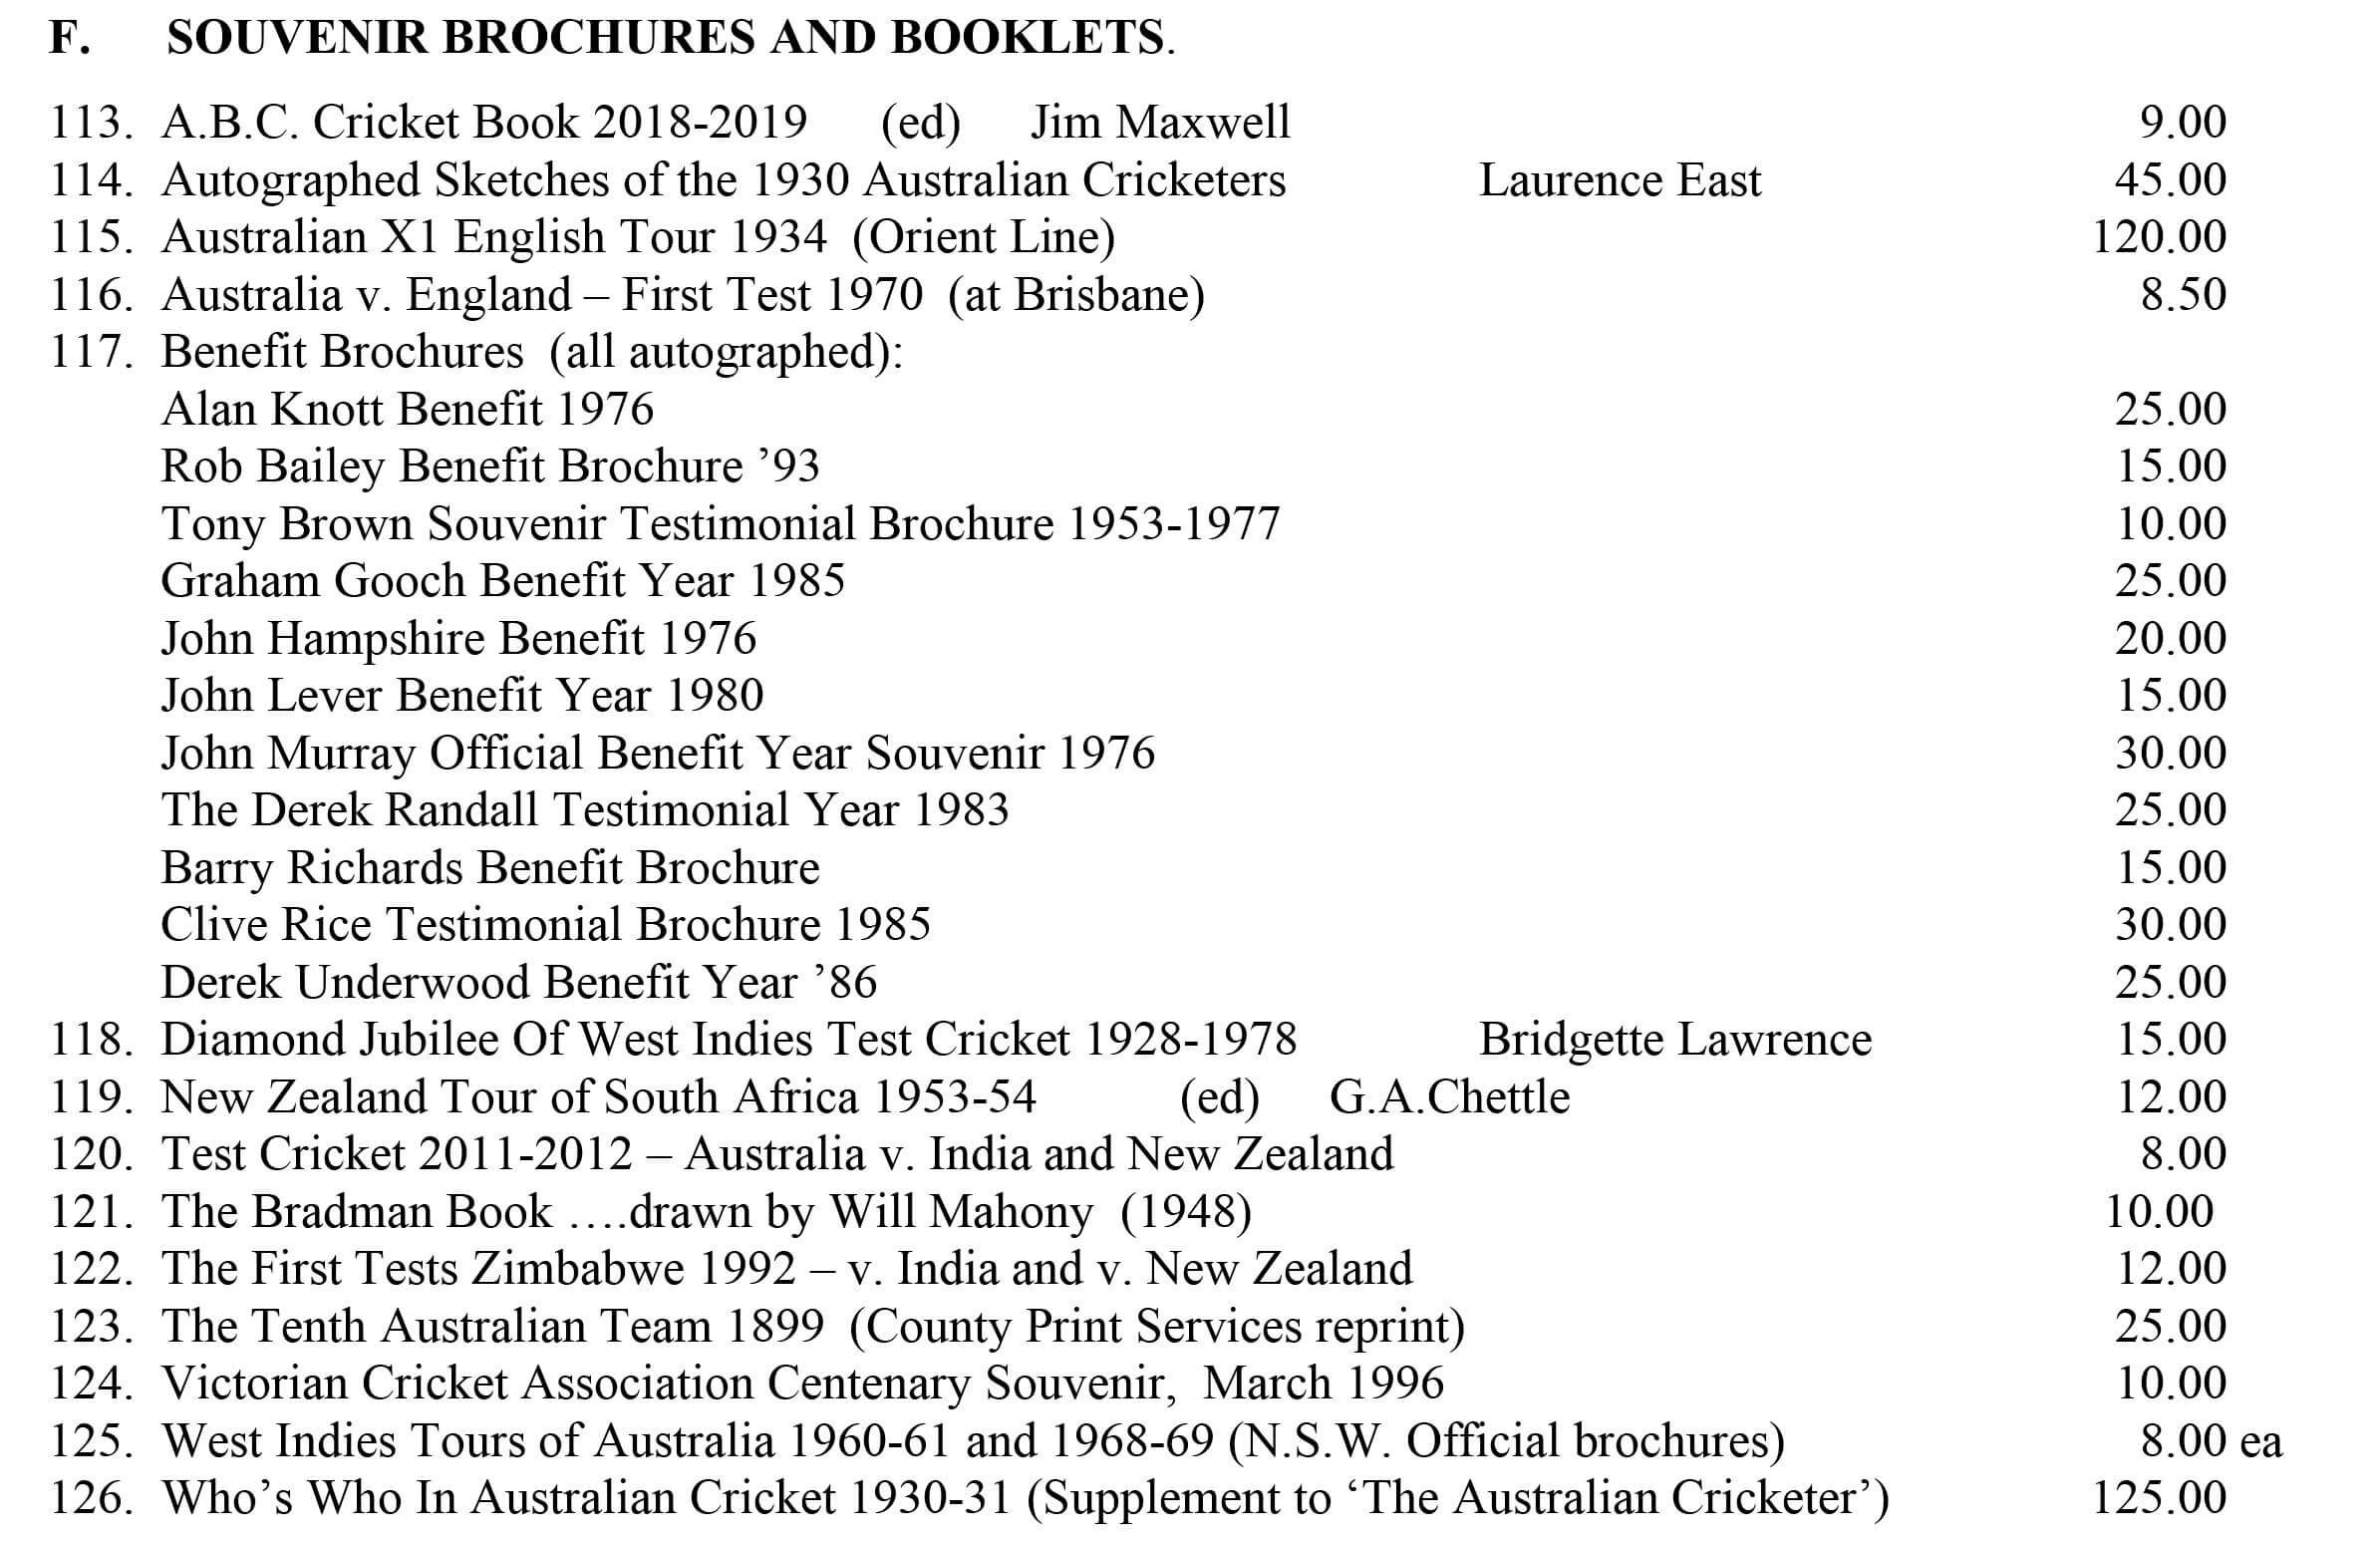 Cricket Souvenirs and Brochures Roger Page Cricket Books December 2018 Roger Page Cricket Books December 2018 Cricket Souvenirs and Brochures